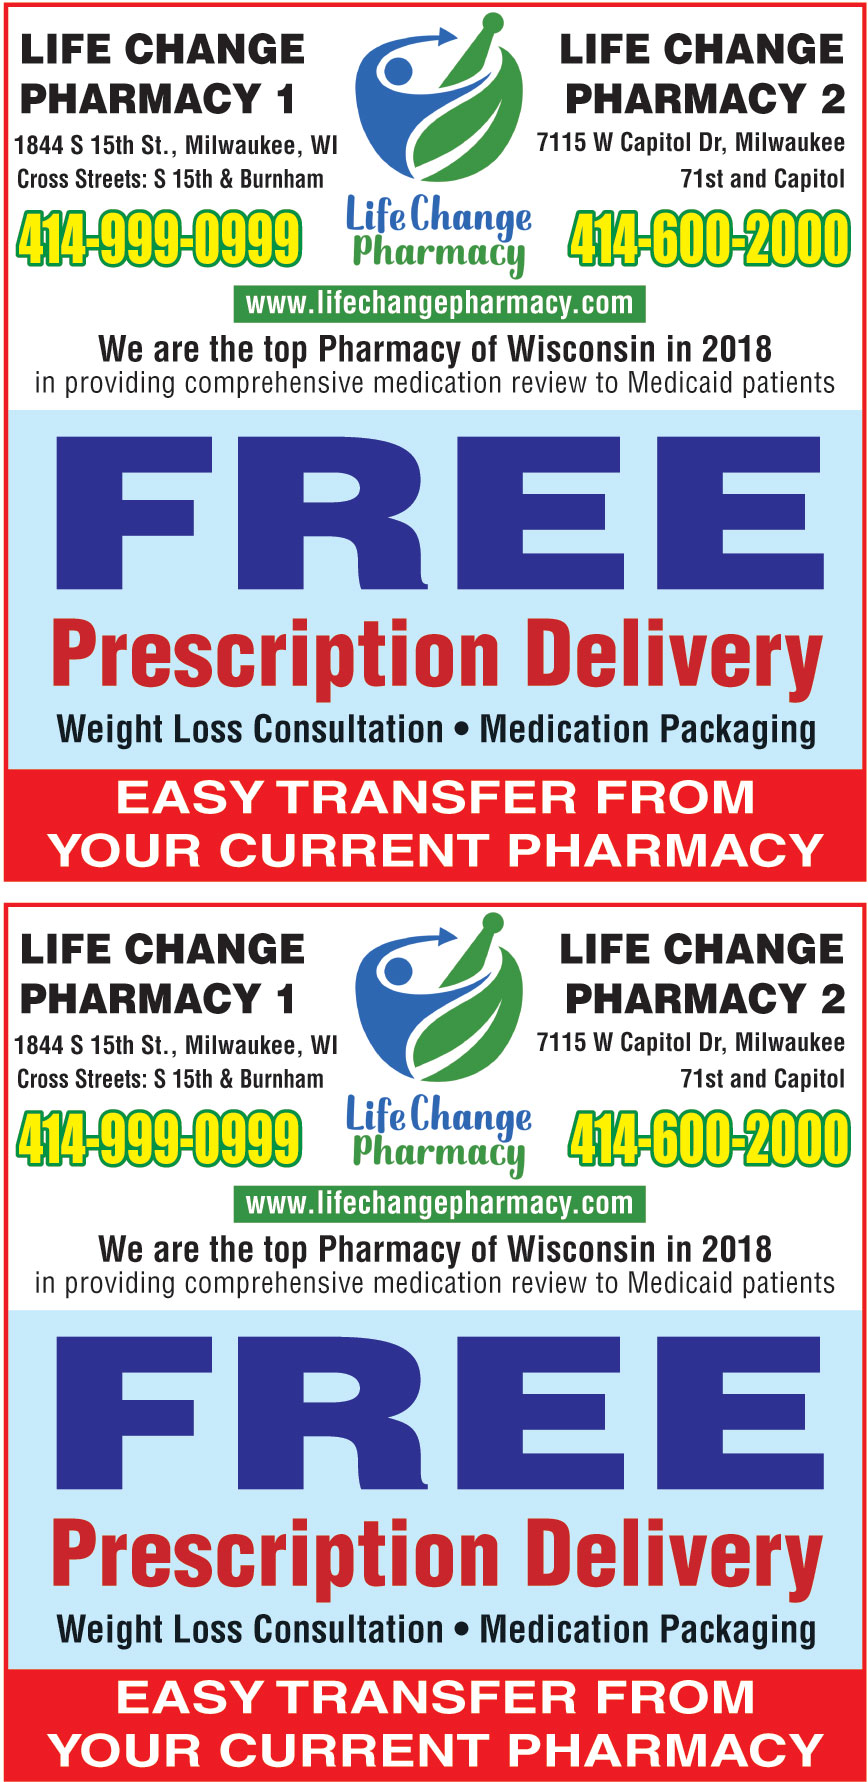 LIFE CHANGE PHARMACY